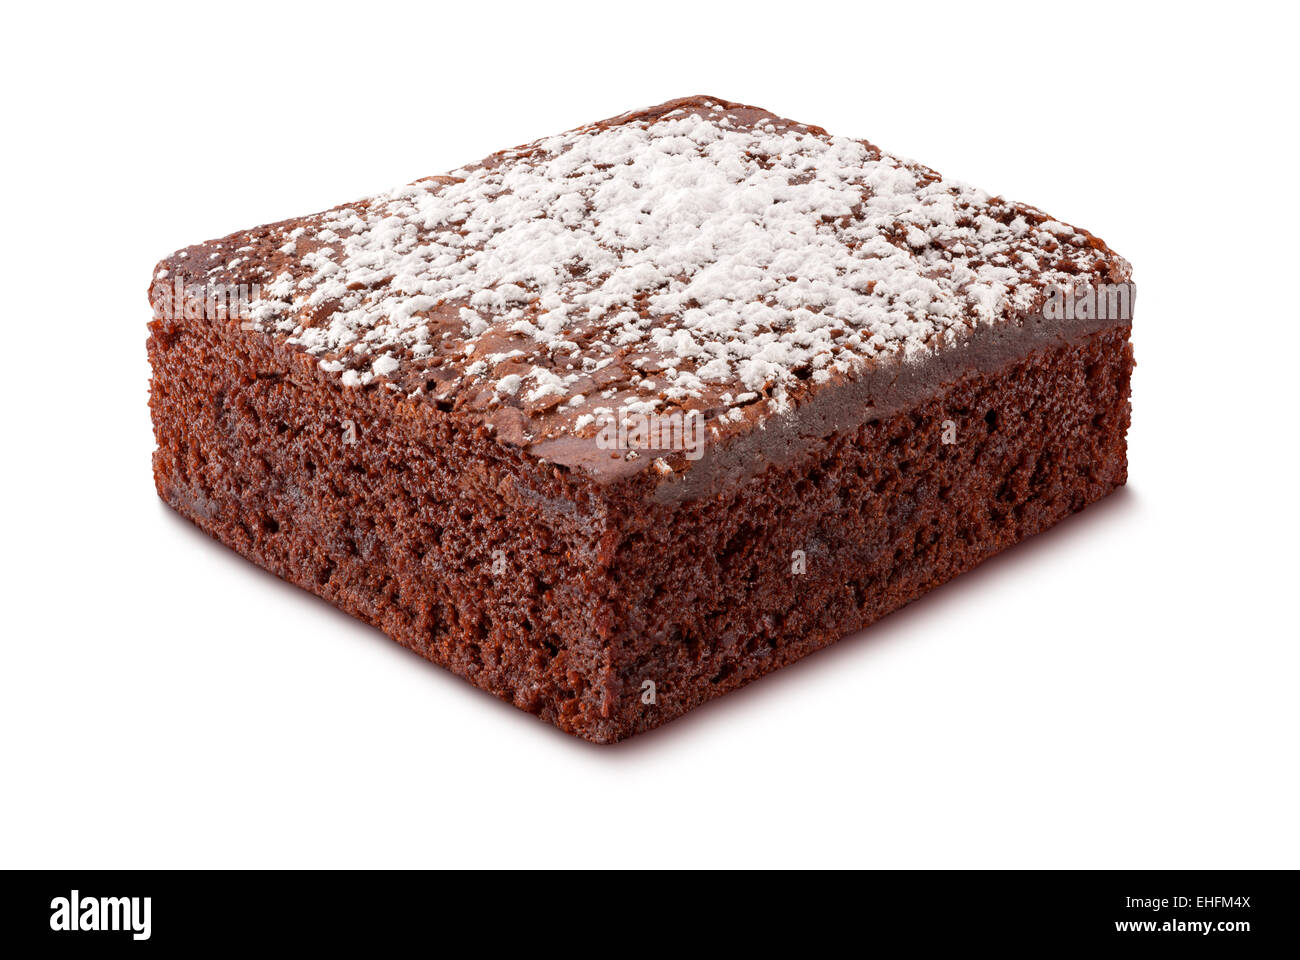 Brownie with Powdered Sugar isolated on white - Stock Image